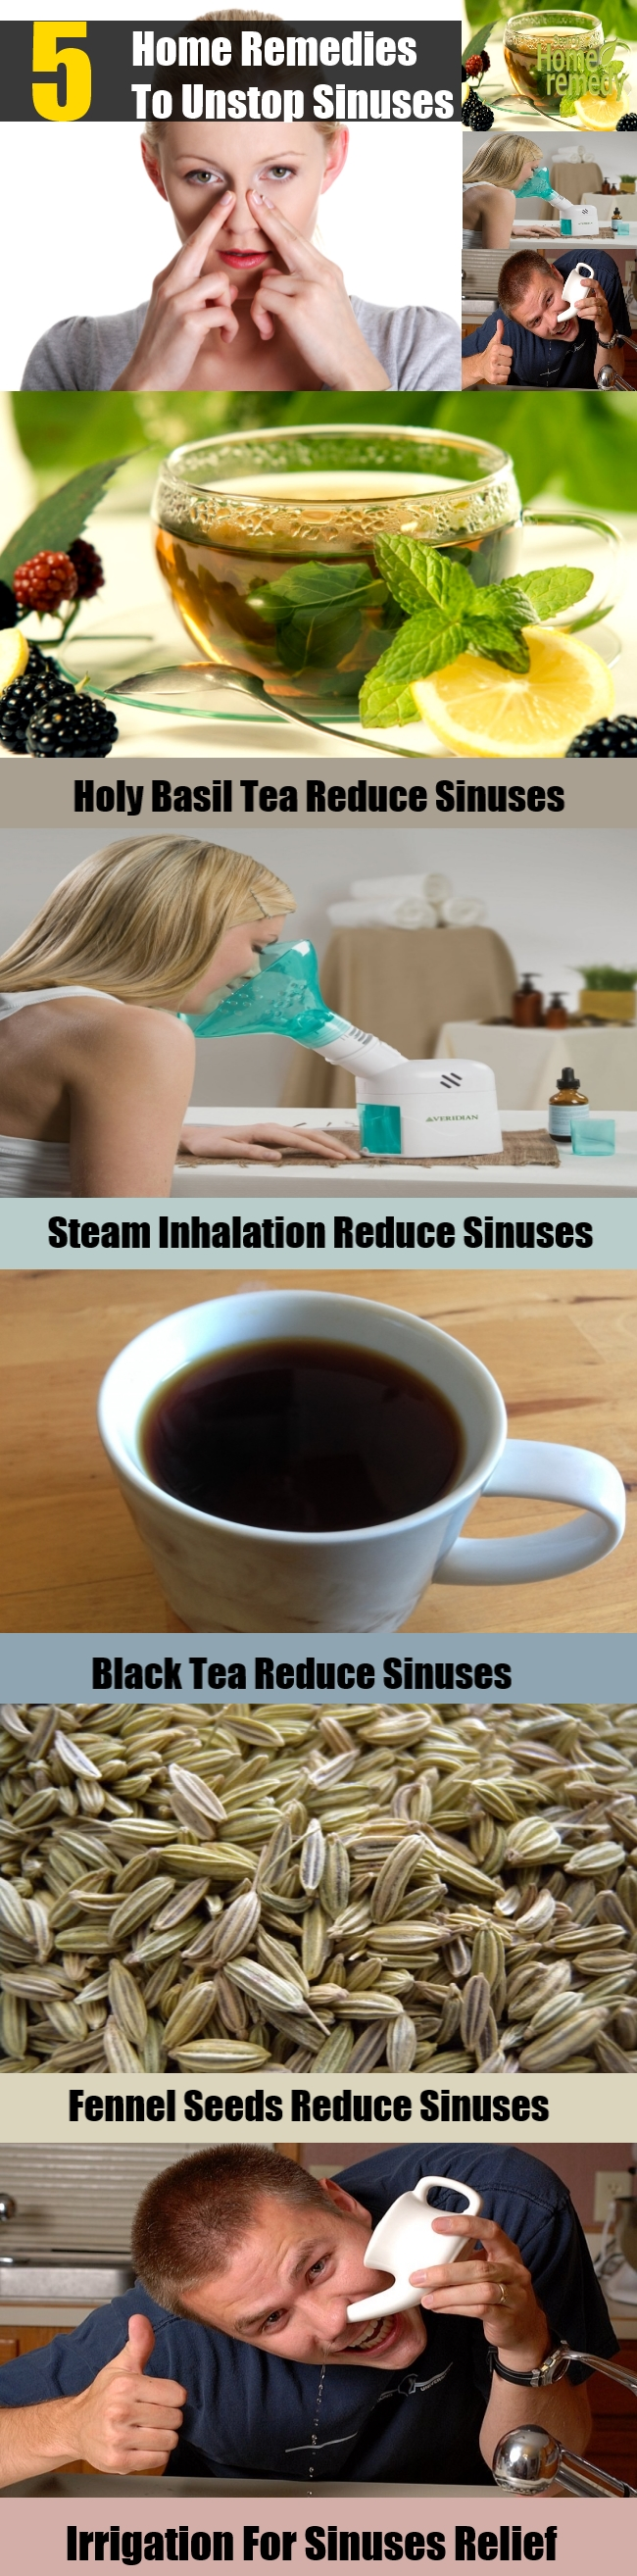 5 Home Remedies To Unstop Sinuses